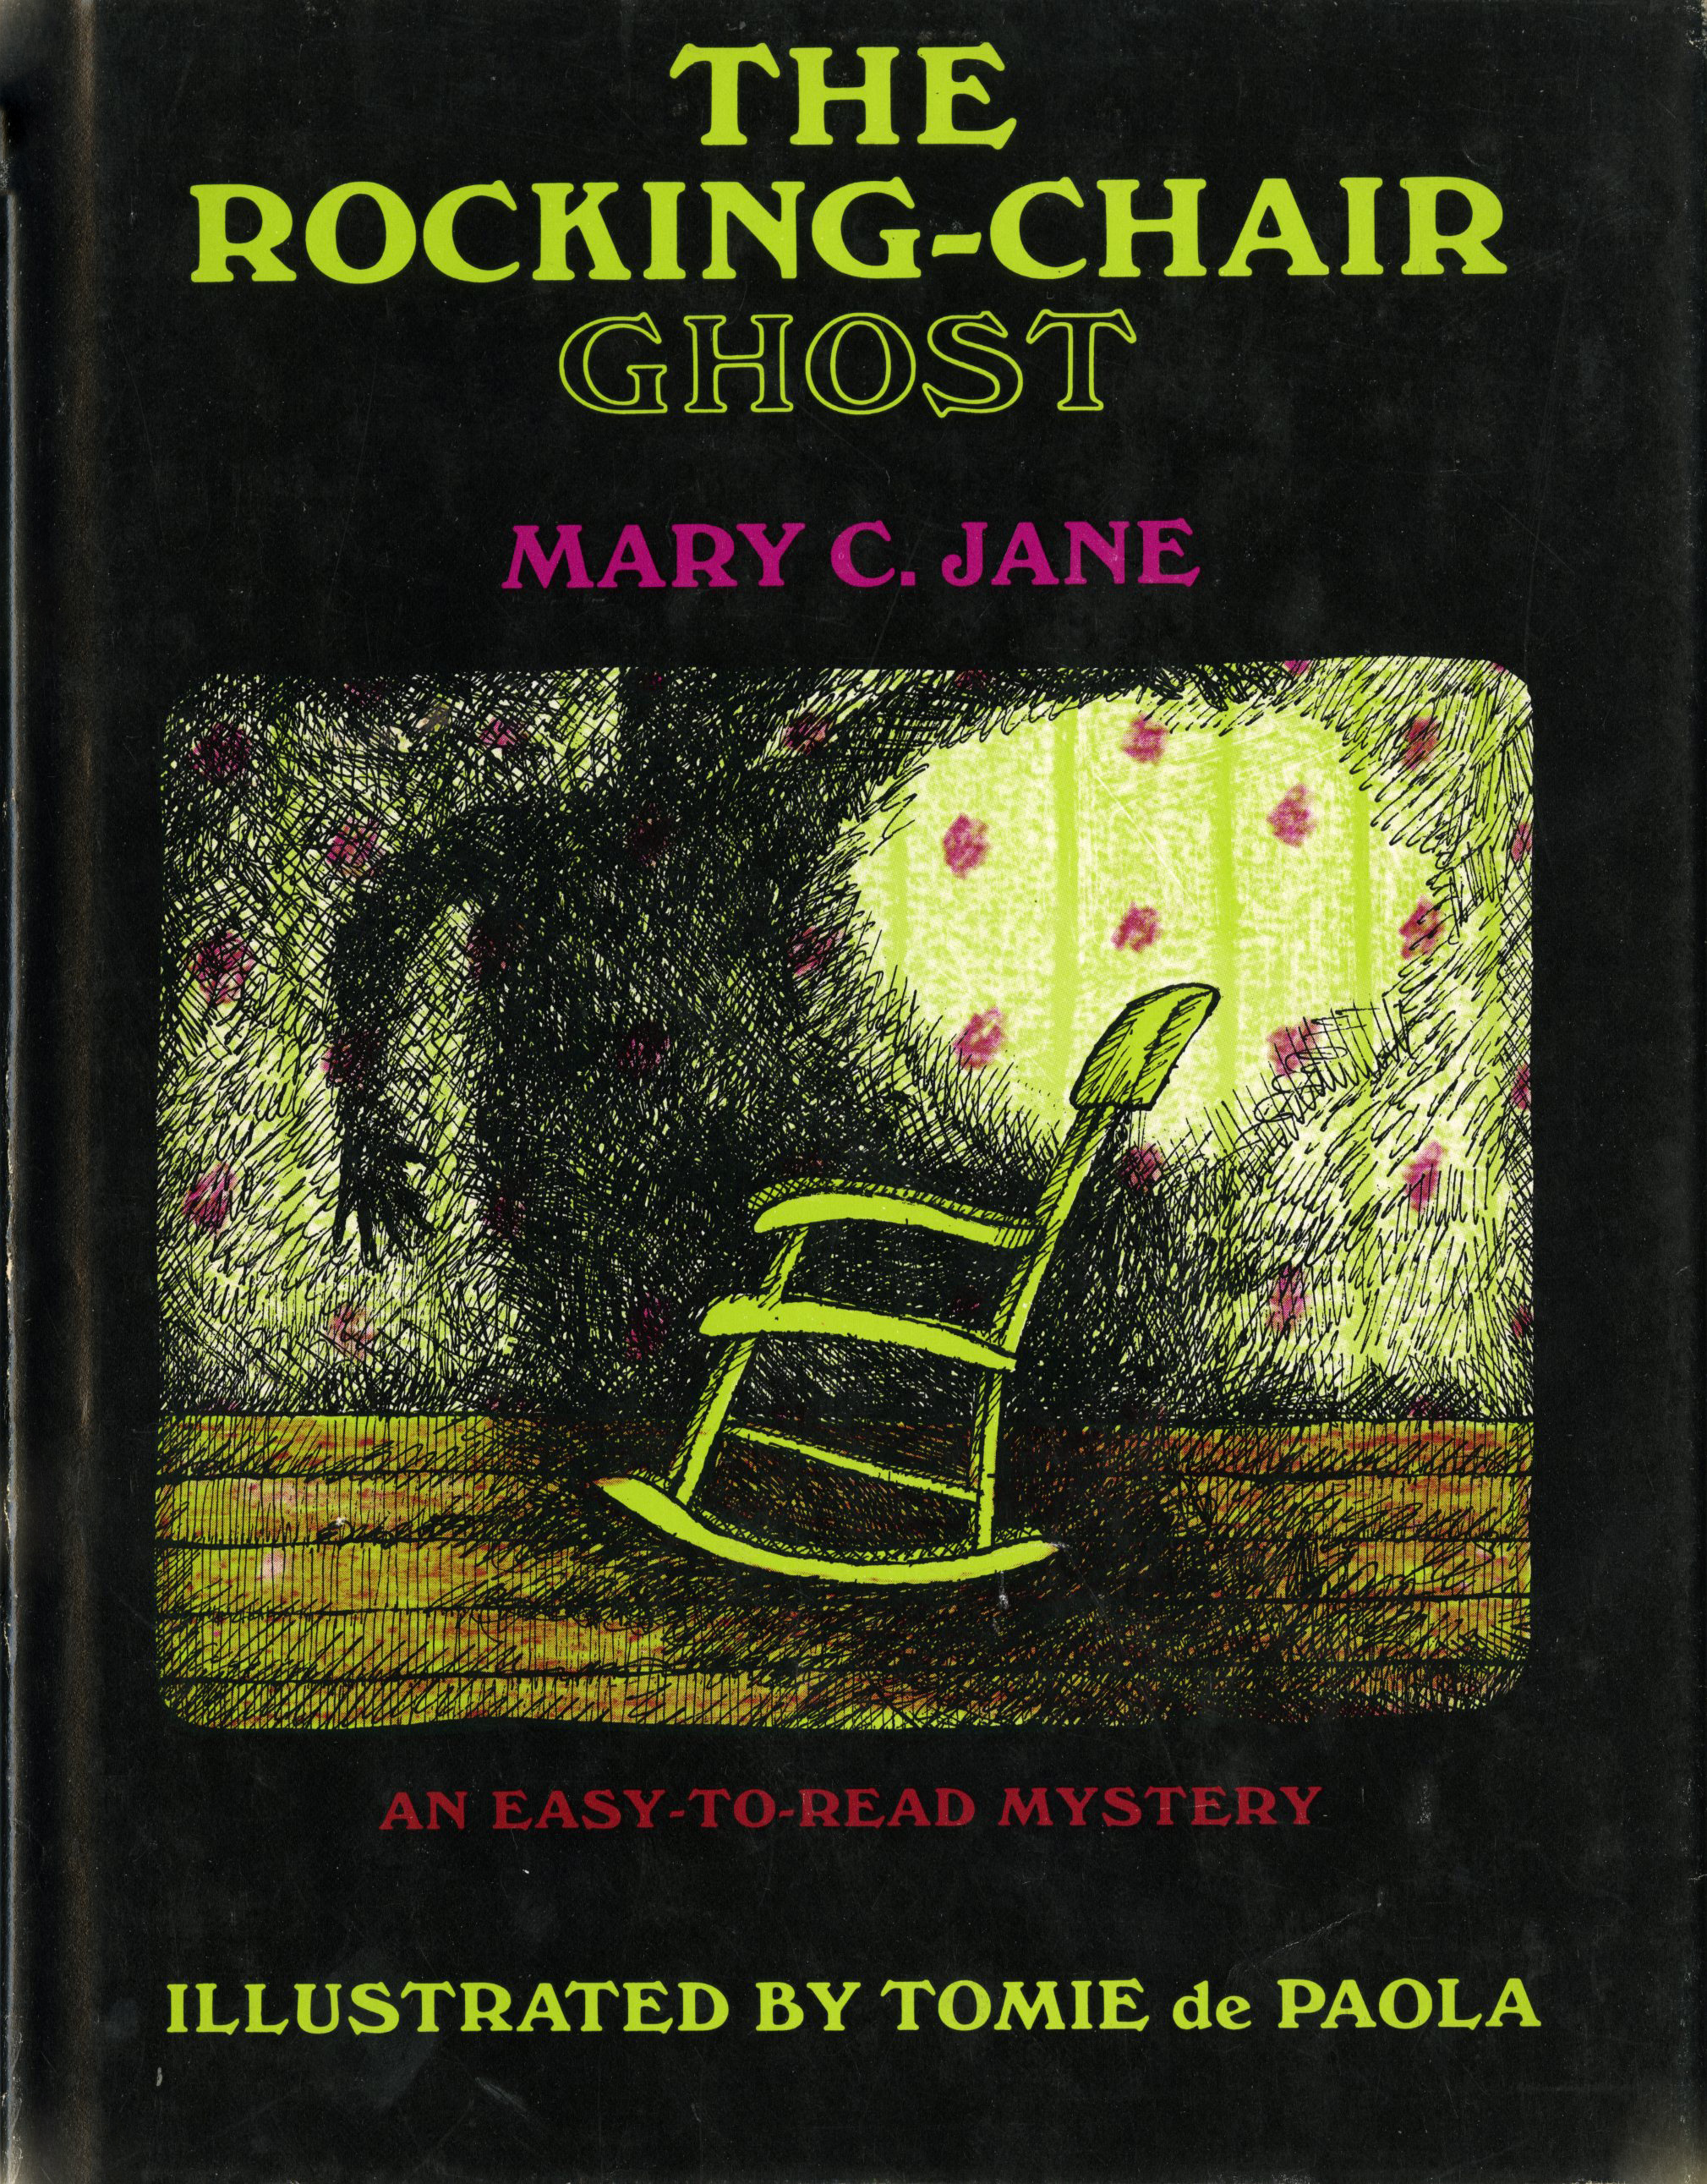 Rocking-Chair Ghost, The Cover.jpg